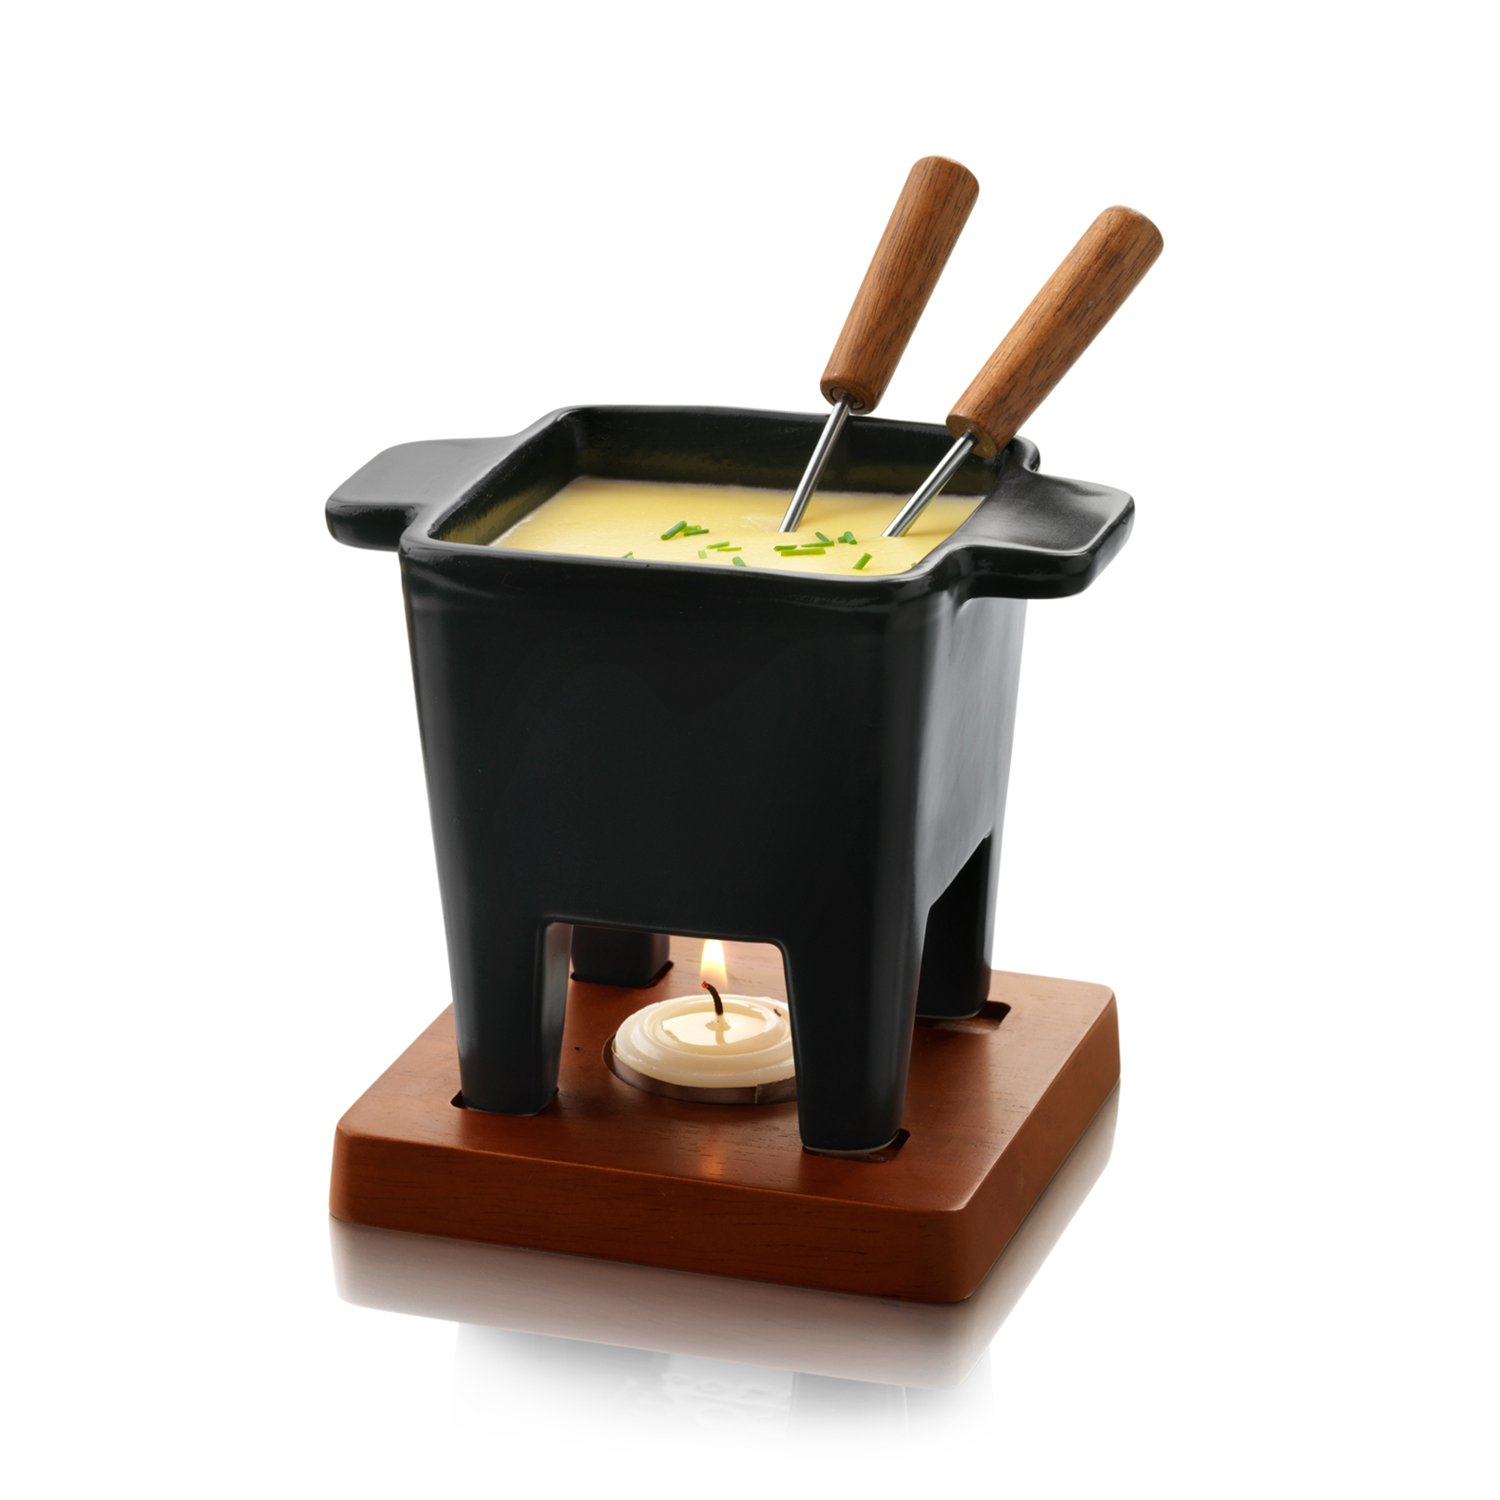 Boska Holland Tealight Fondue Set, For Cheese or Chocolate, Tapas, 200 mL Black, Pro Collection by Boska Holland (Image #1)